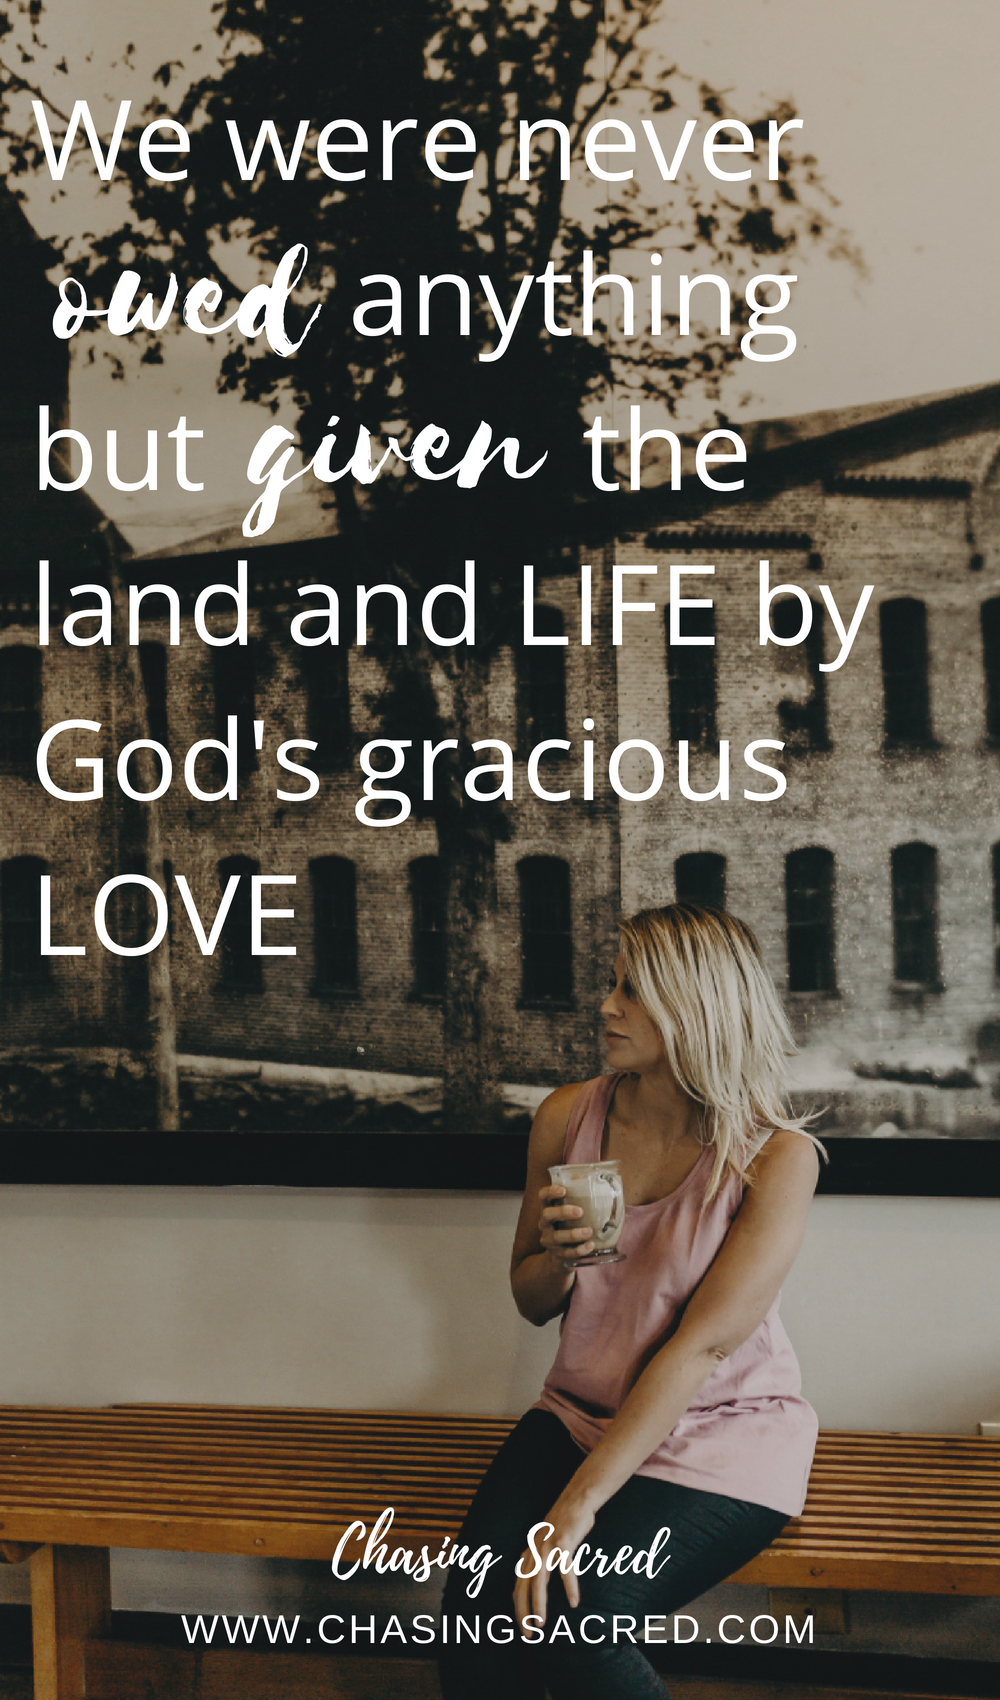 We were never owed anything but given the land and life by God's gracious love